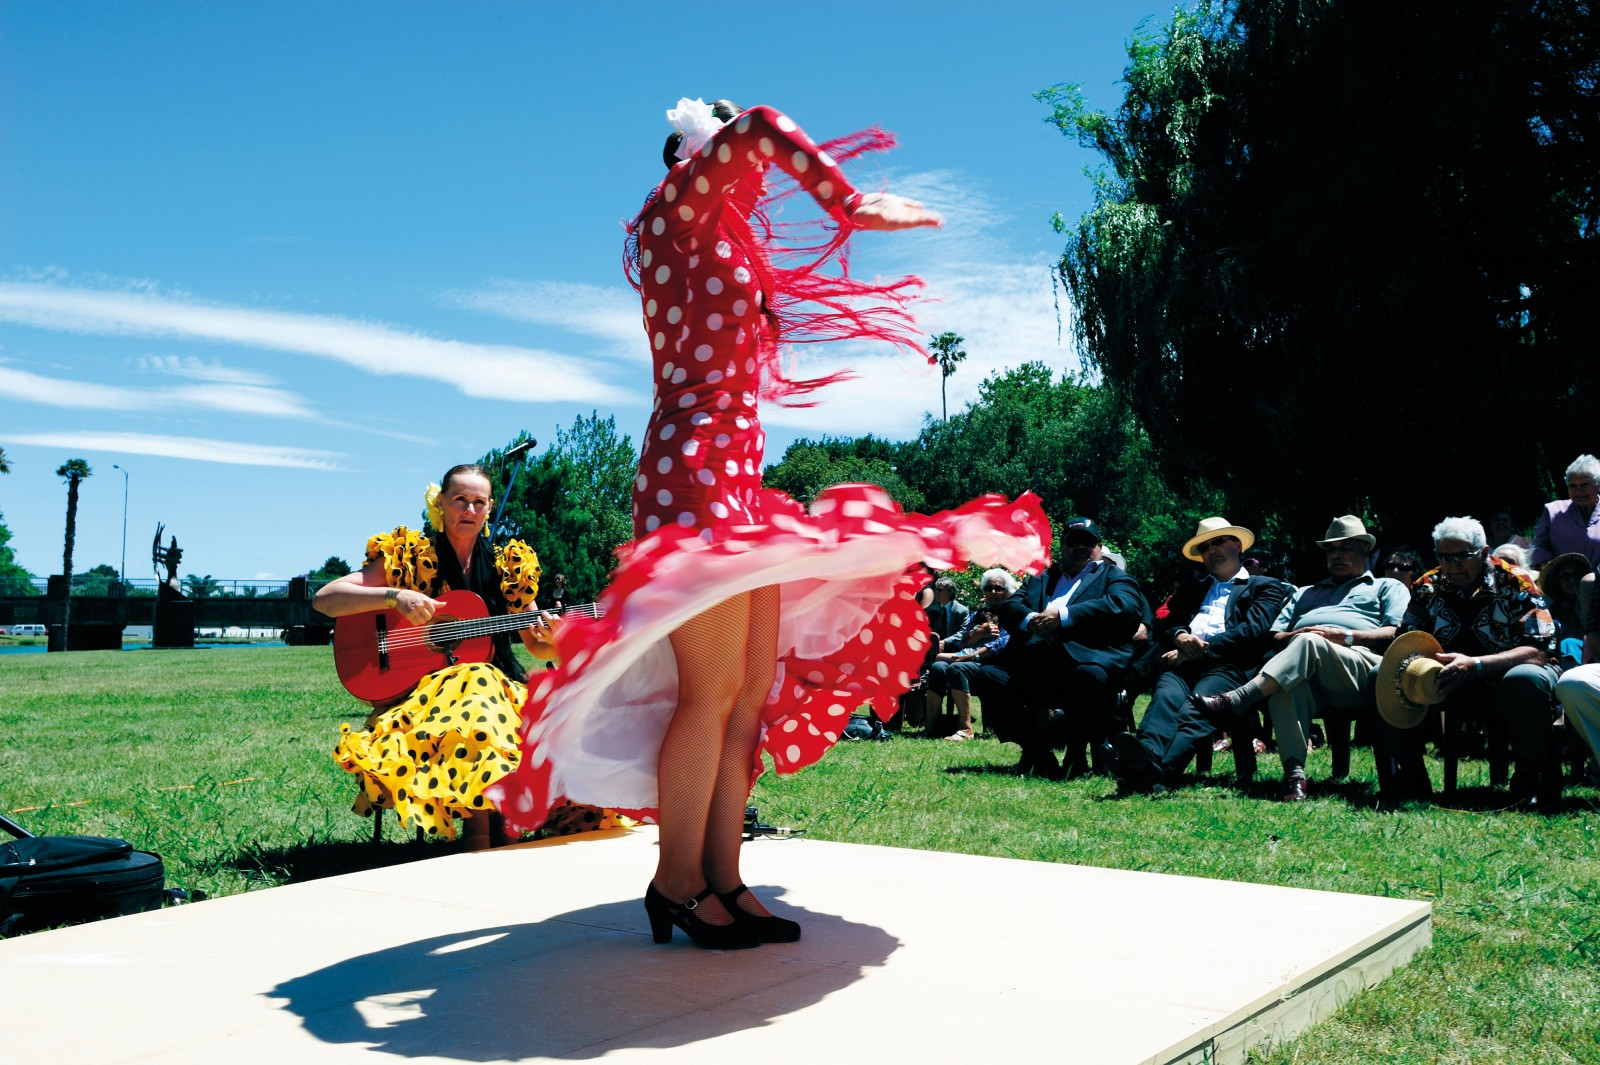 The Gisborne Rose Garden resounded with the sound of castanets, guitar and stamping of feet as a New Zealand-based flamenco dance troupe performed at a powhiri to welcome the Spanish visitors. Gisborne and Valverde del Majano, the small town Manuel Jose came from, have signed the first sister-city accord between New Zealand and Spain.